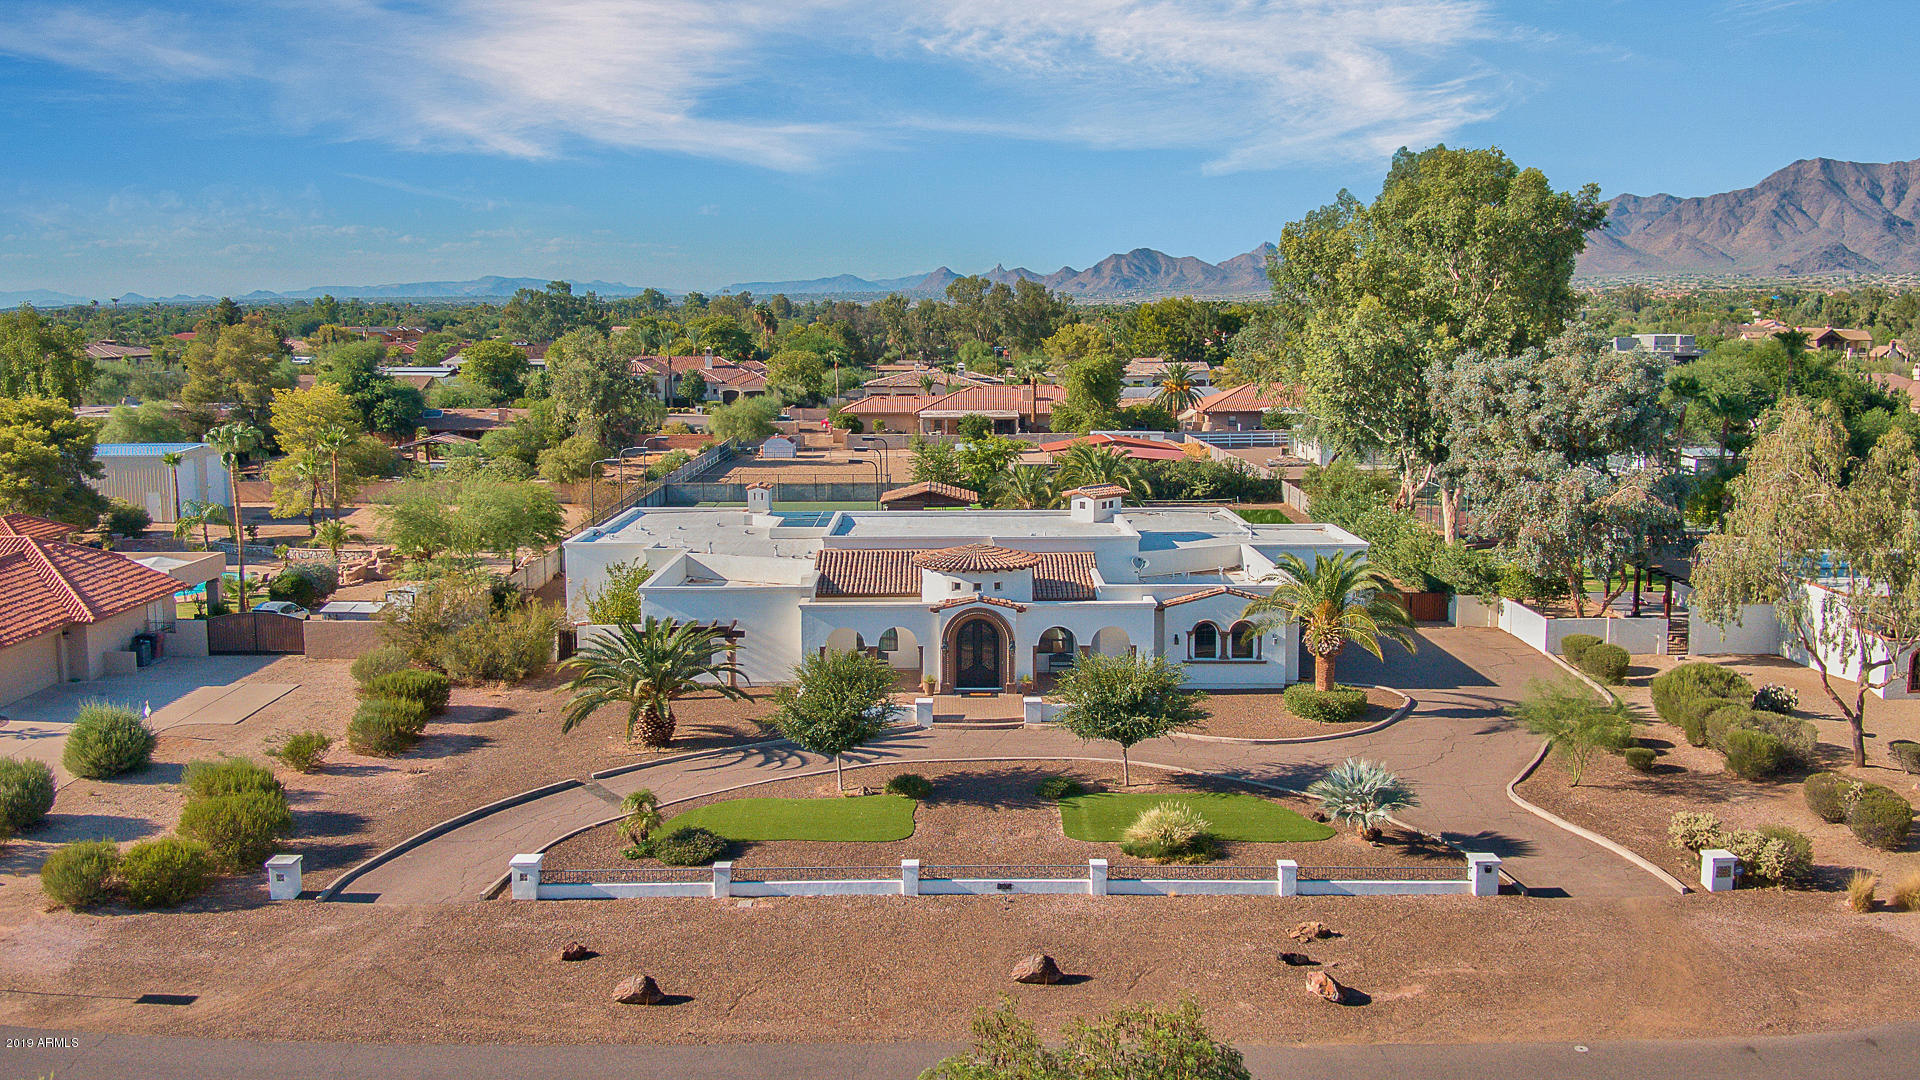 MLS 5971843 9740 E DESERT COVE Avenue, Scottsdale, AZ 85260 Scottsdale AZ Private Pool